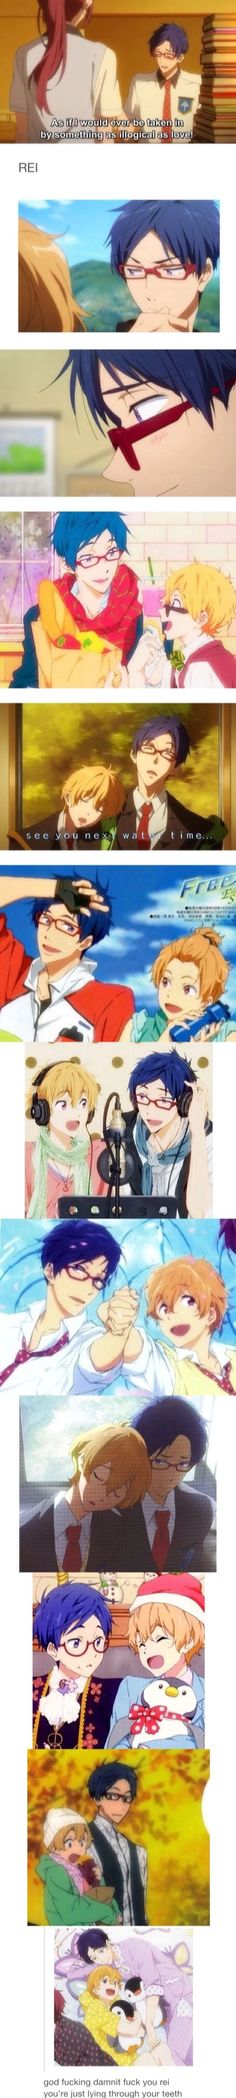 I haven't watched season 2... DOES THIS MEAN NAGISA AND REI ARE CANON YAOI?!?! PLEASE YES<<<< idk man but we can hope